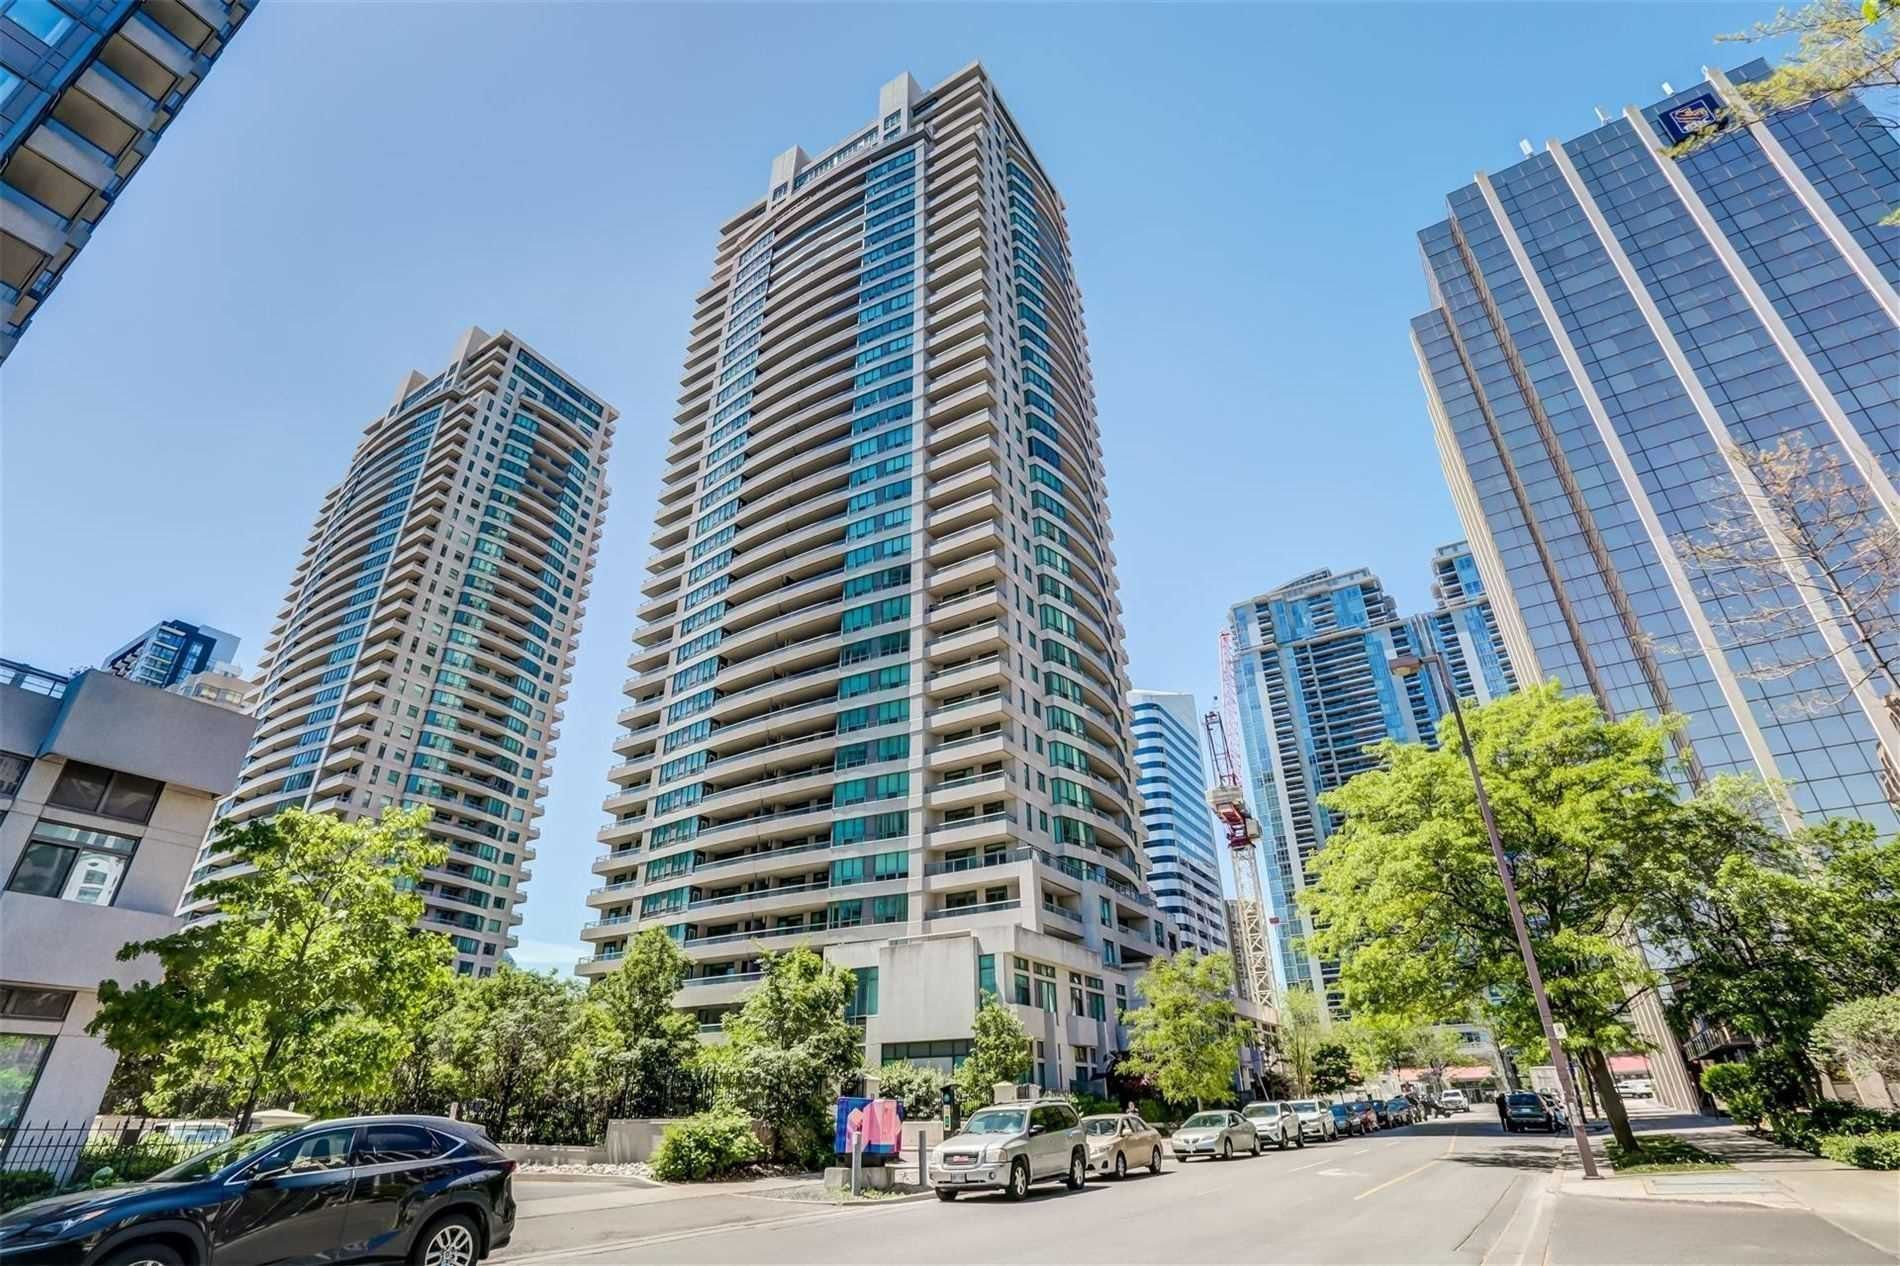 23 Hollywood Ave, unit 506 for sale in Toronto - image #1